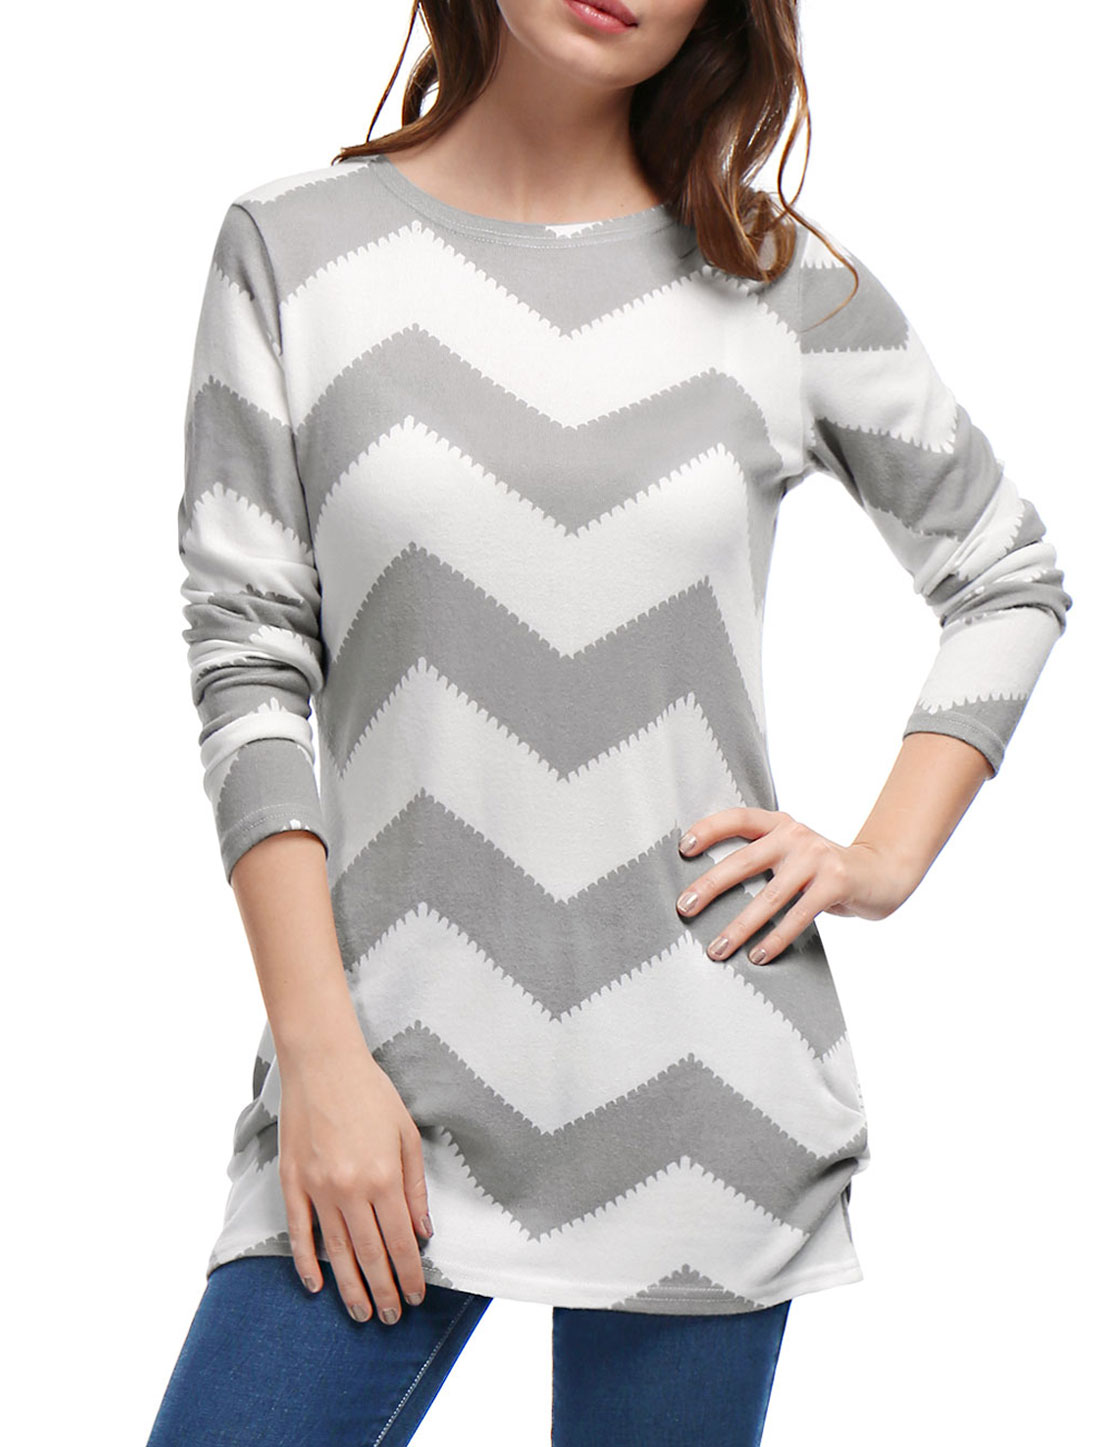 Woman Zig-Zag Pattern Knitted Relax Fit Tunic Top Gray White S